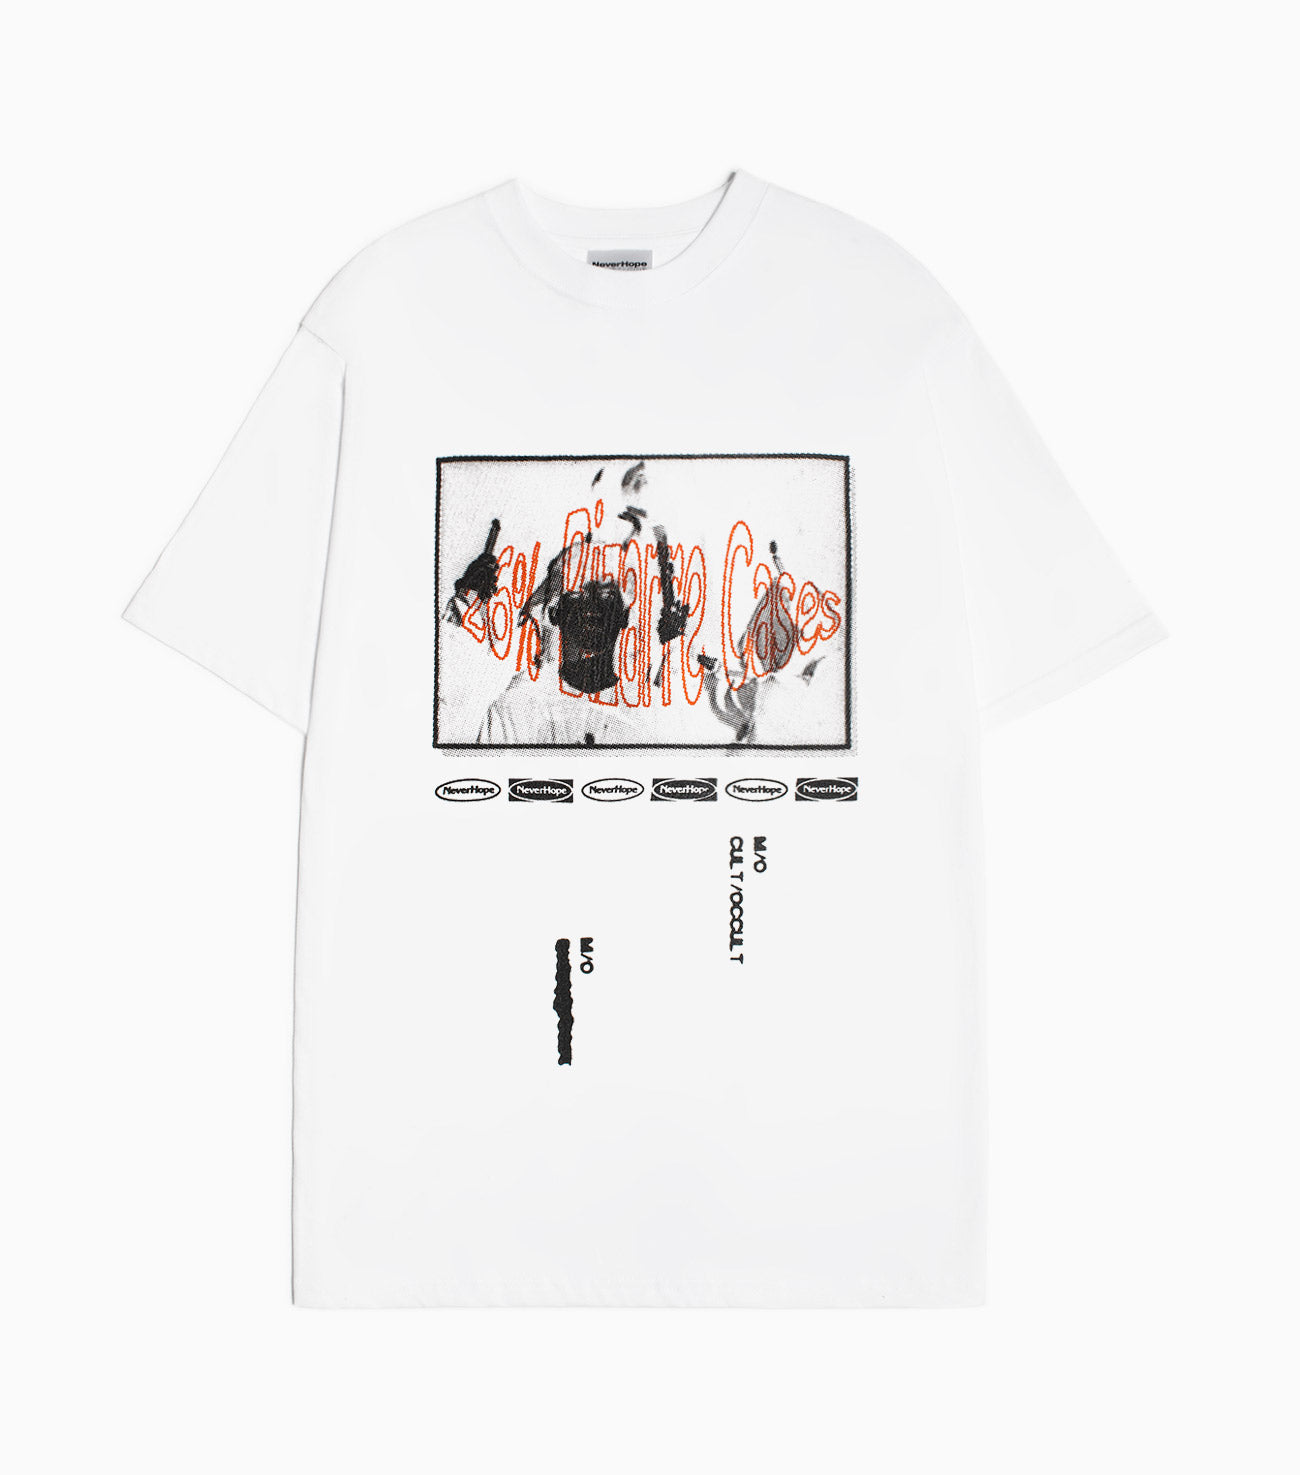 NeverHope Bizarre Cases T-Shirt - White